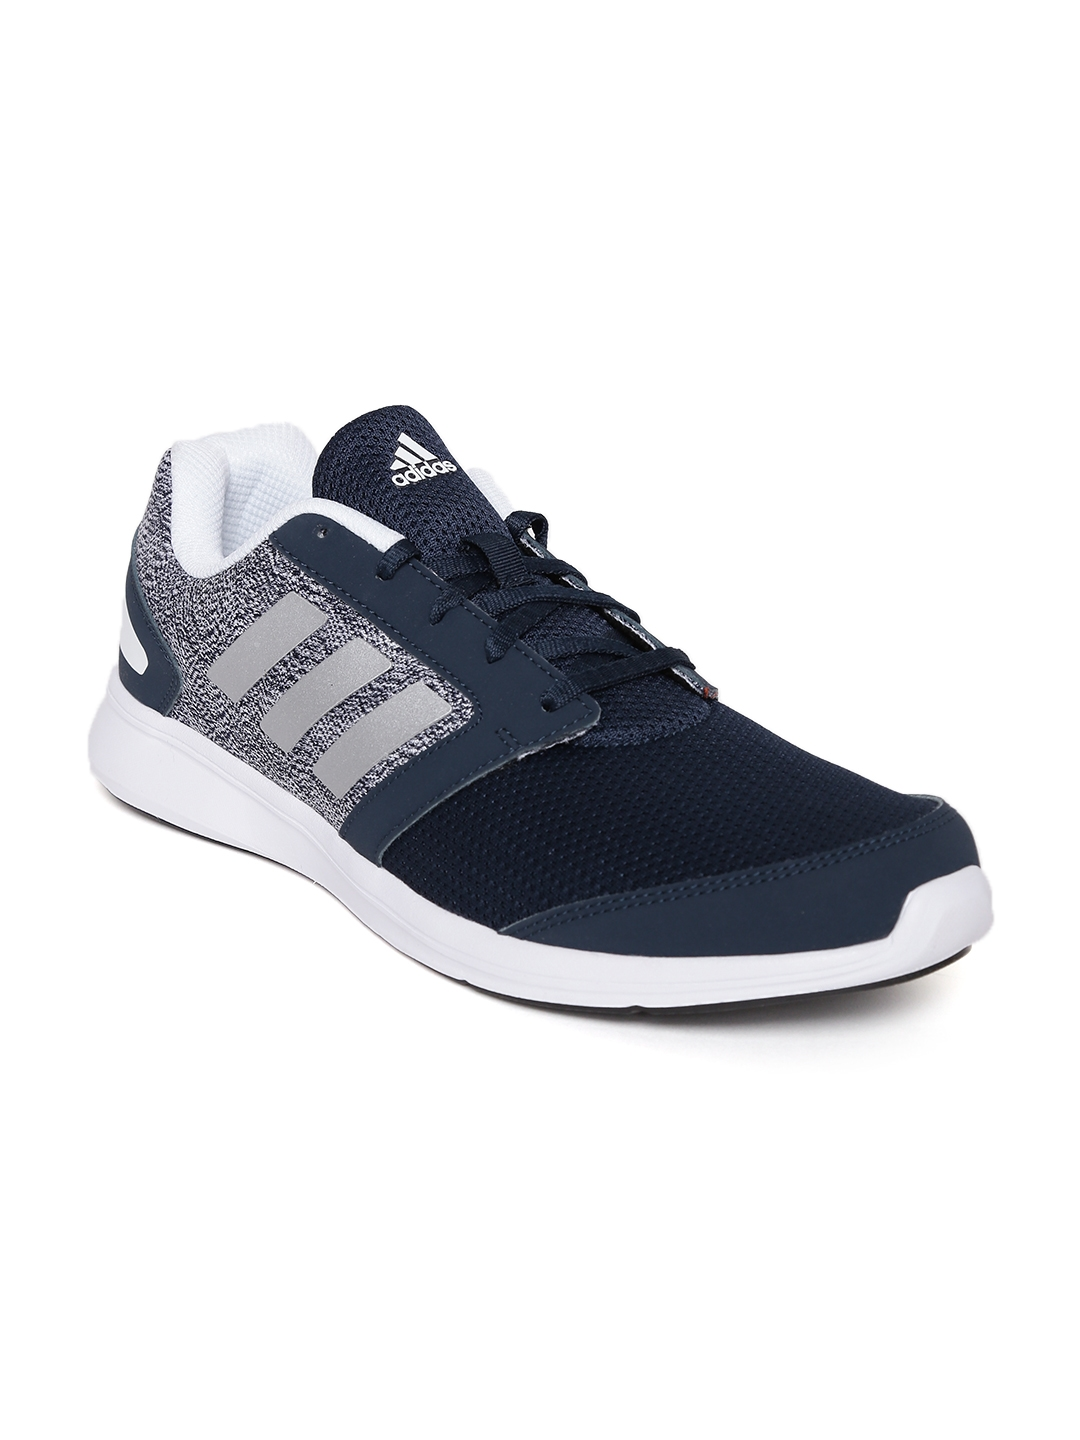 Adidas Men Navy \u0026 Off-White ADI Pacer 3.0 Running Shoes